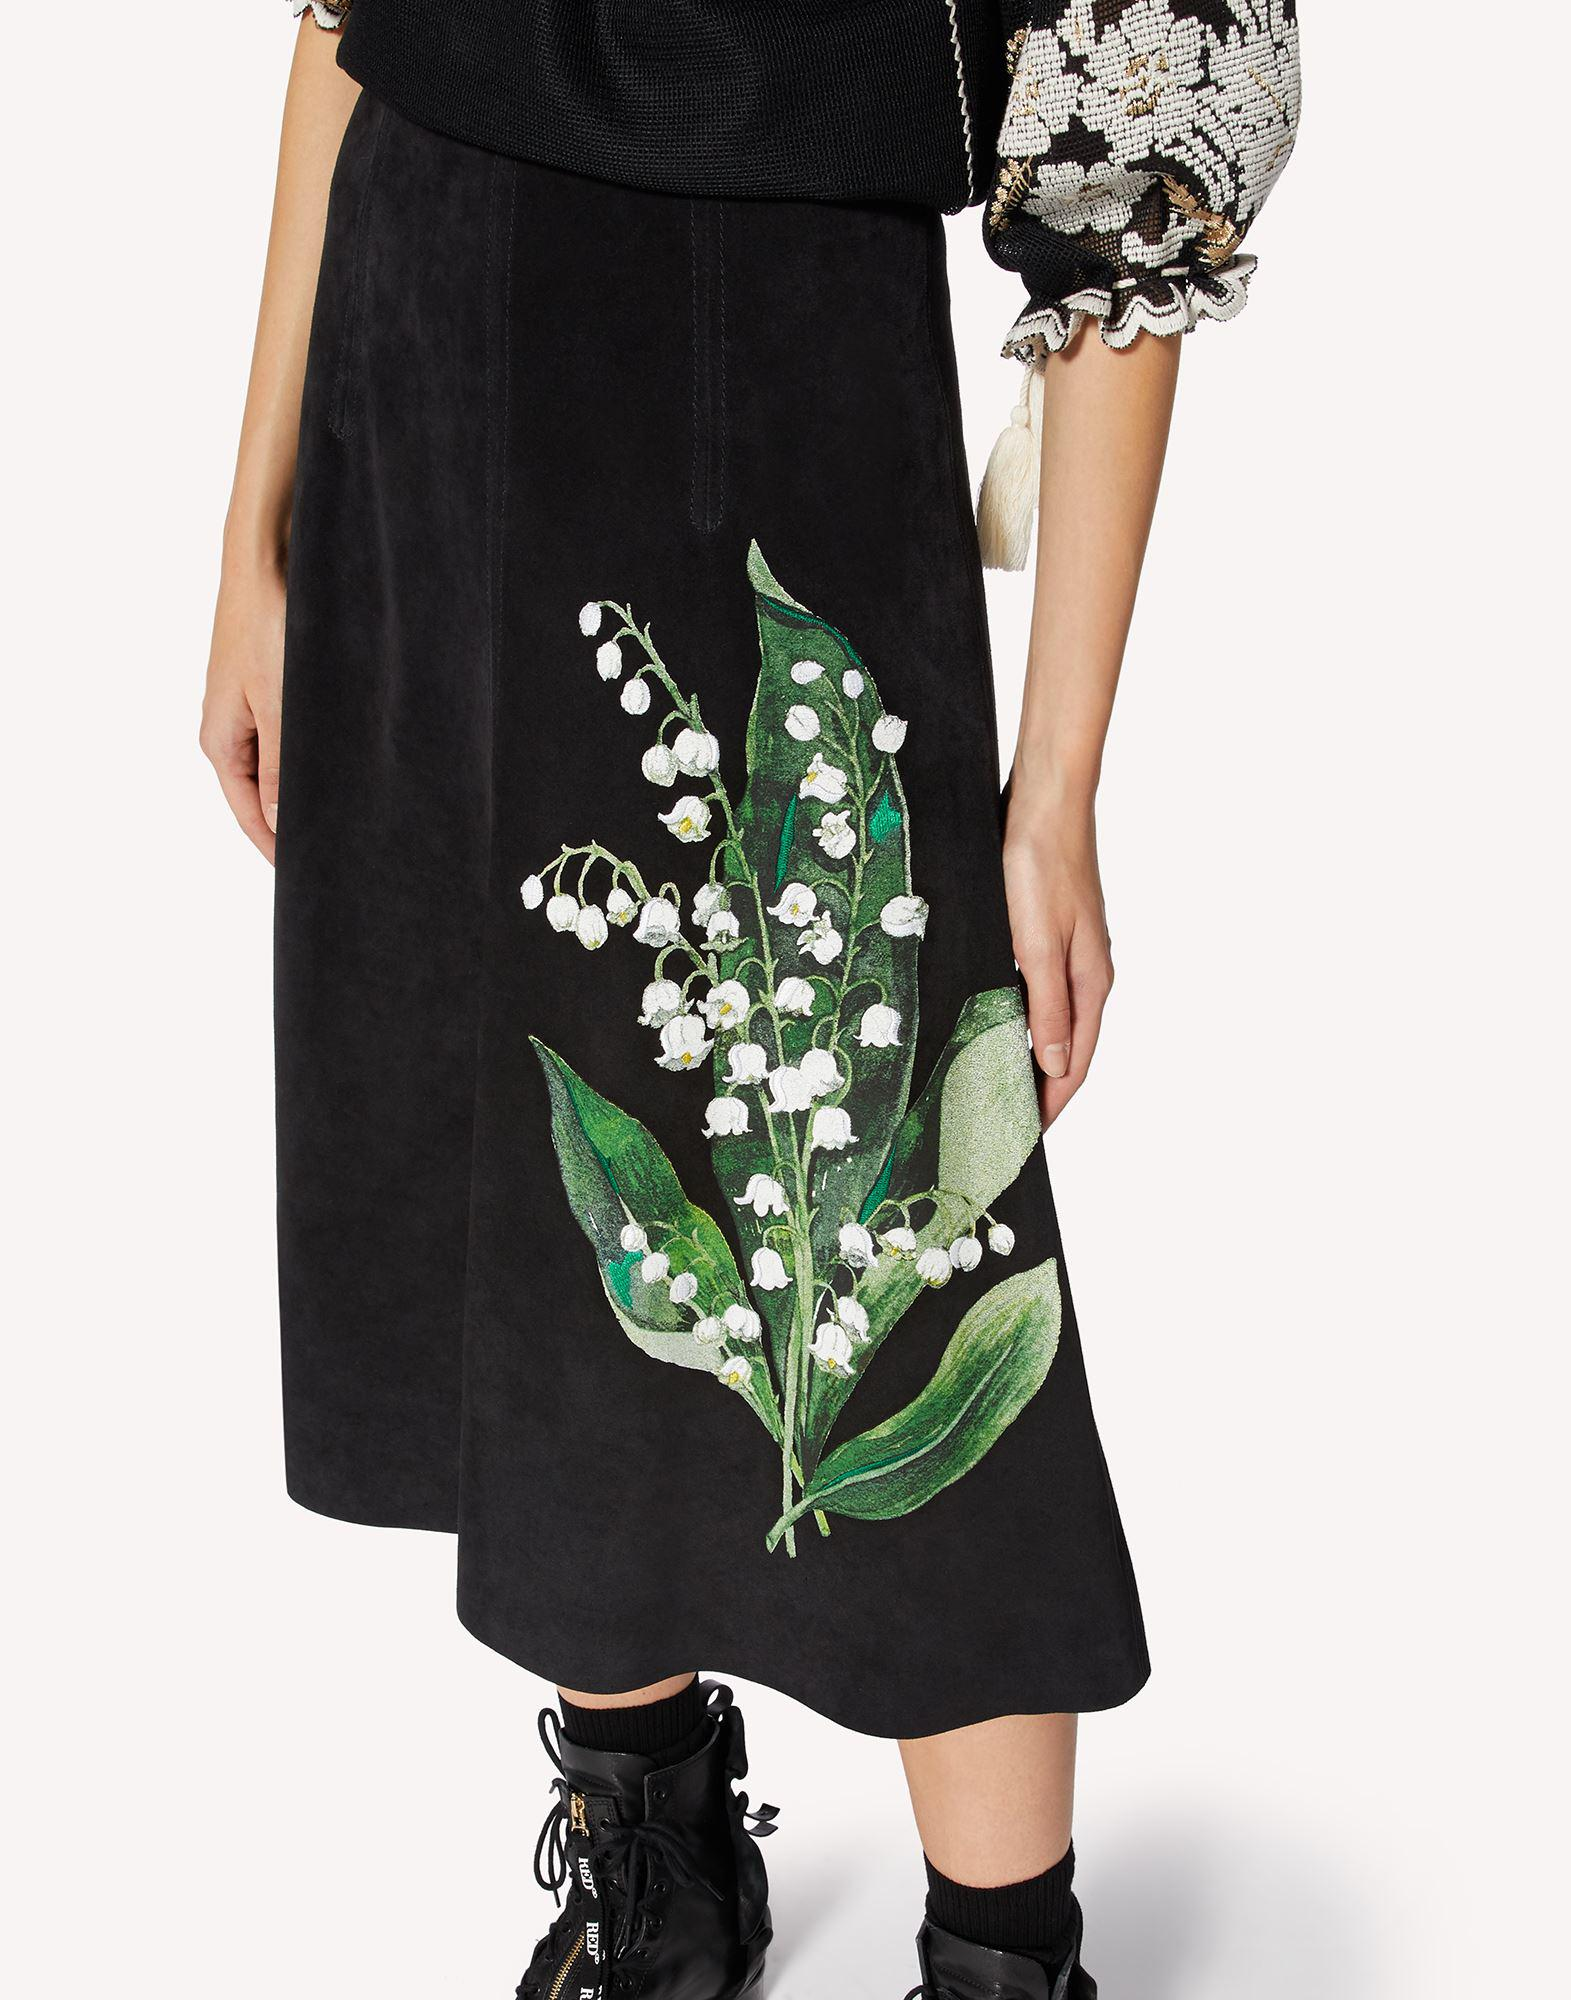 A-LINE SUEDE SKIRT WITH MAY LILY EMBROIDERY 3